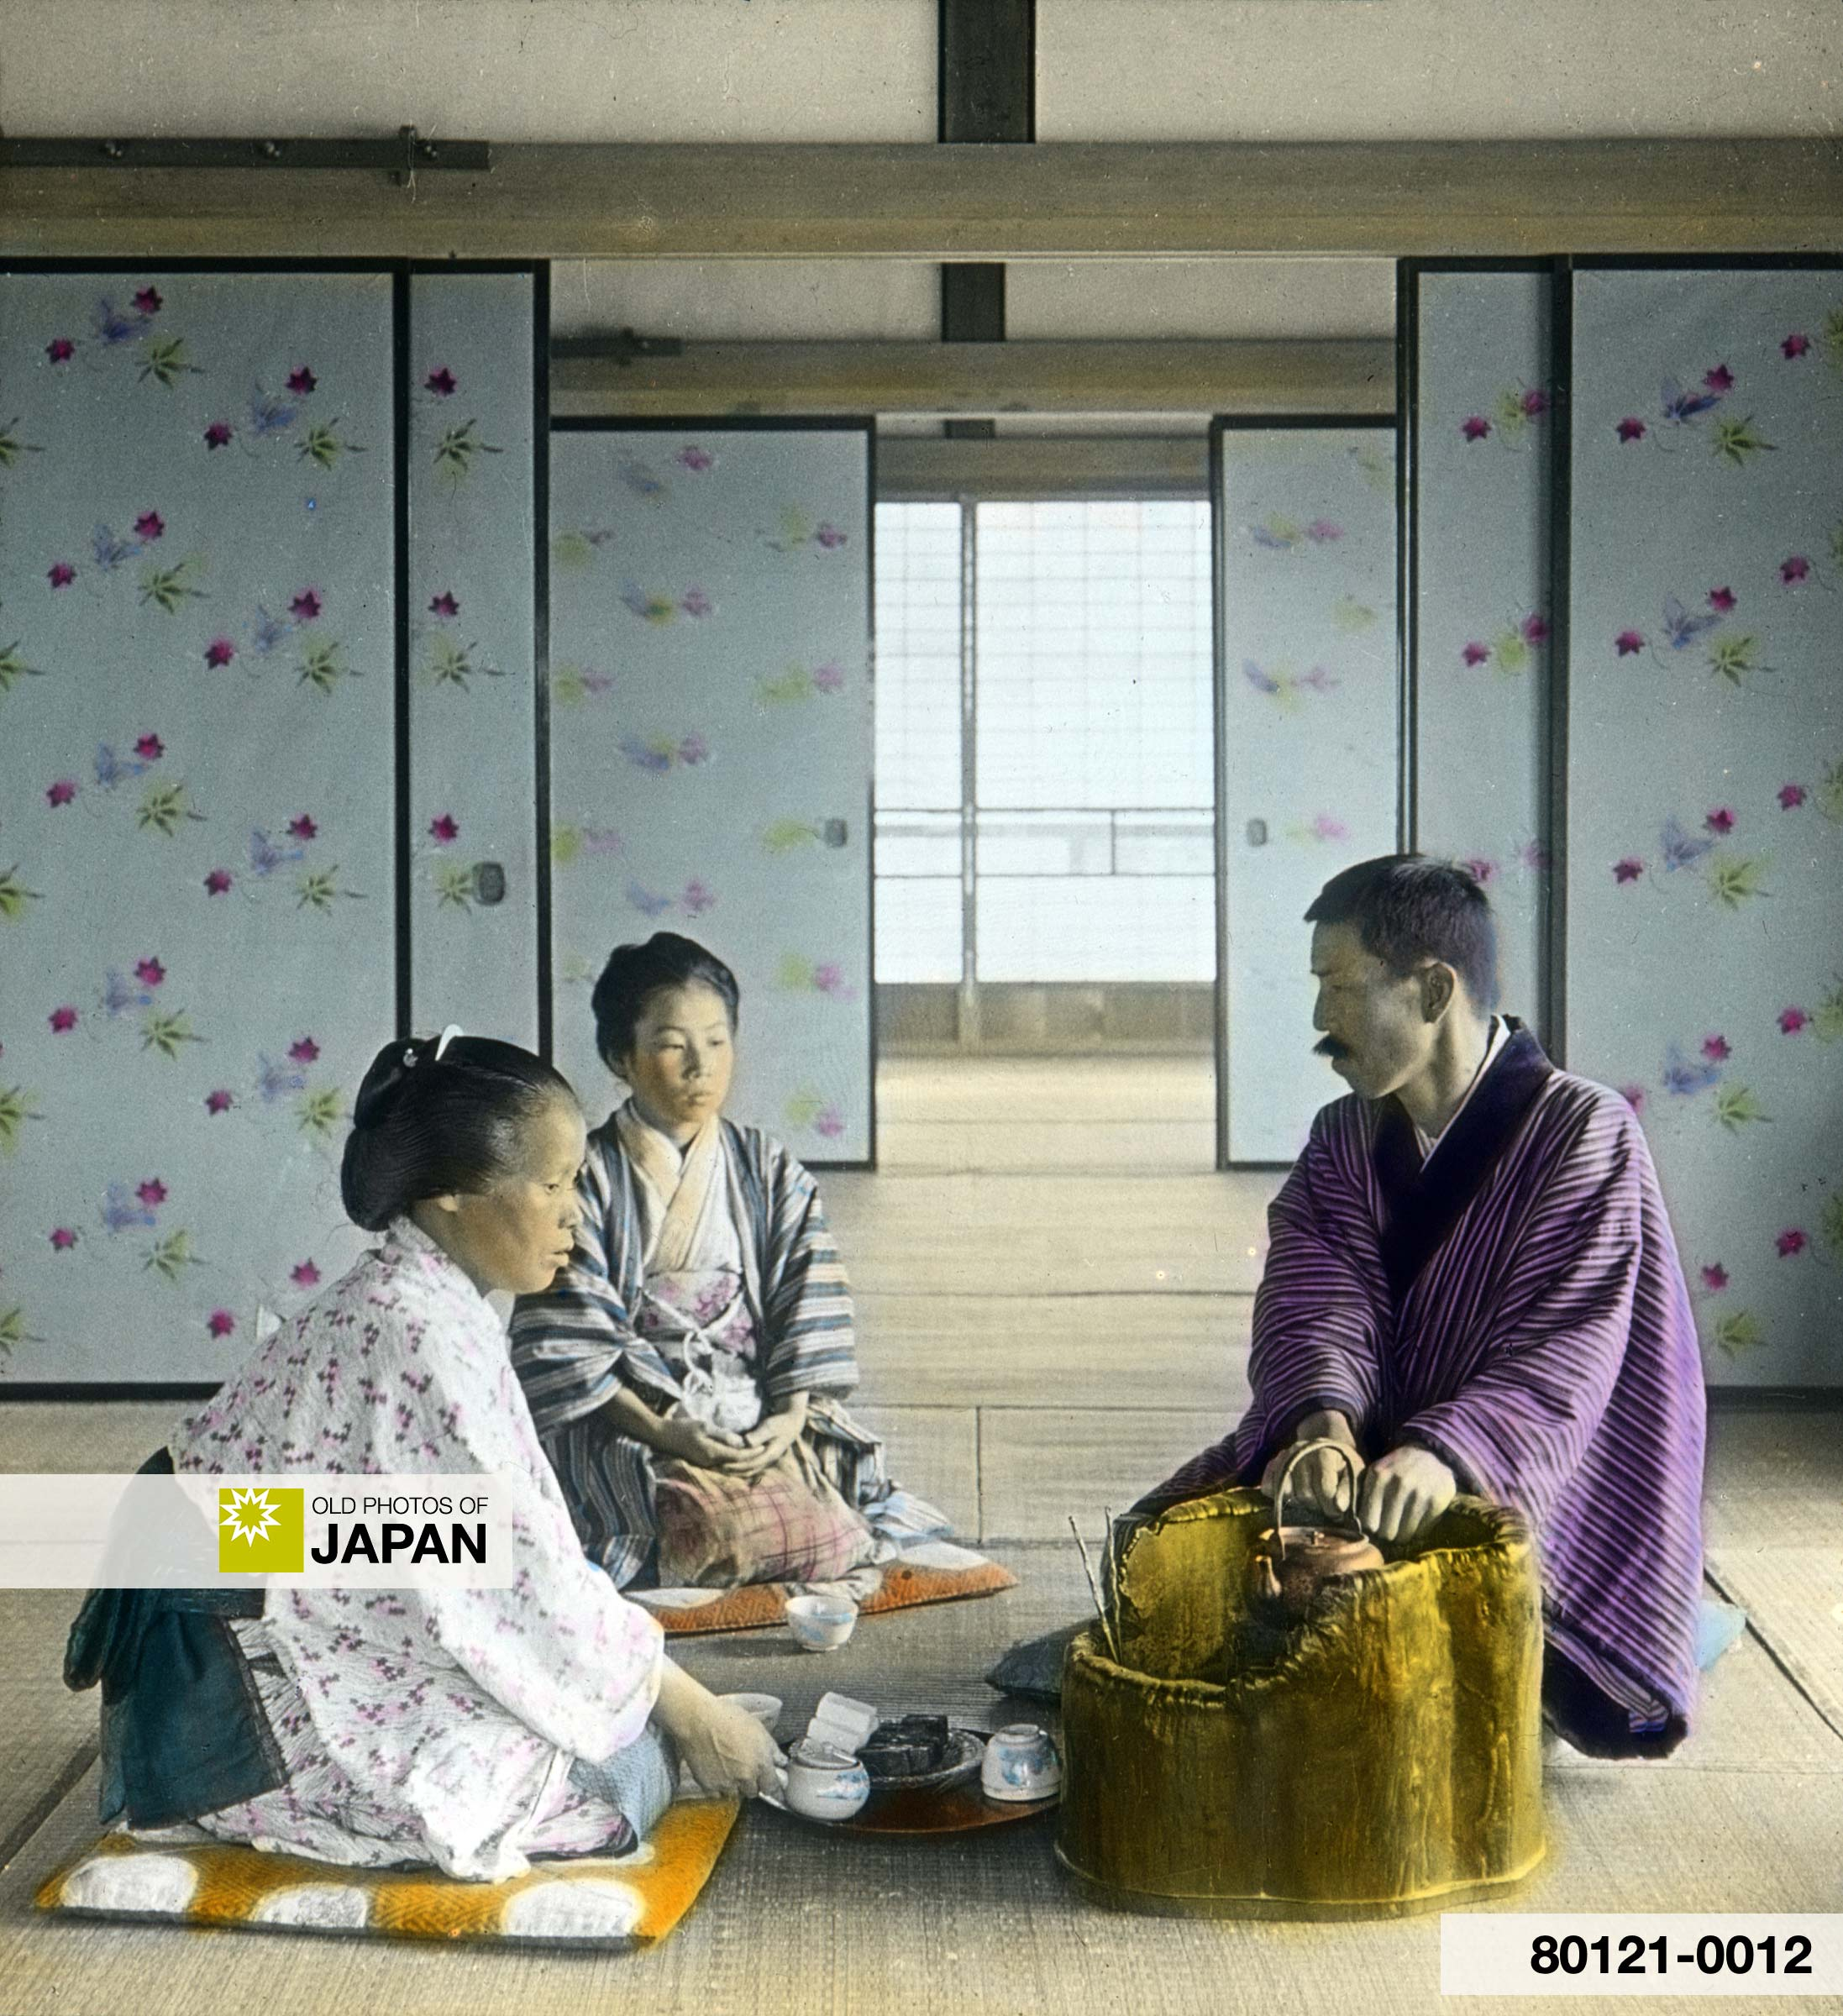 Japan. Man and Two Women Having Tea Inside Room.